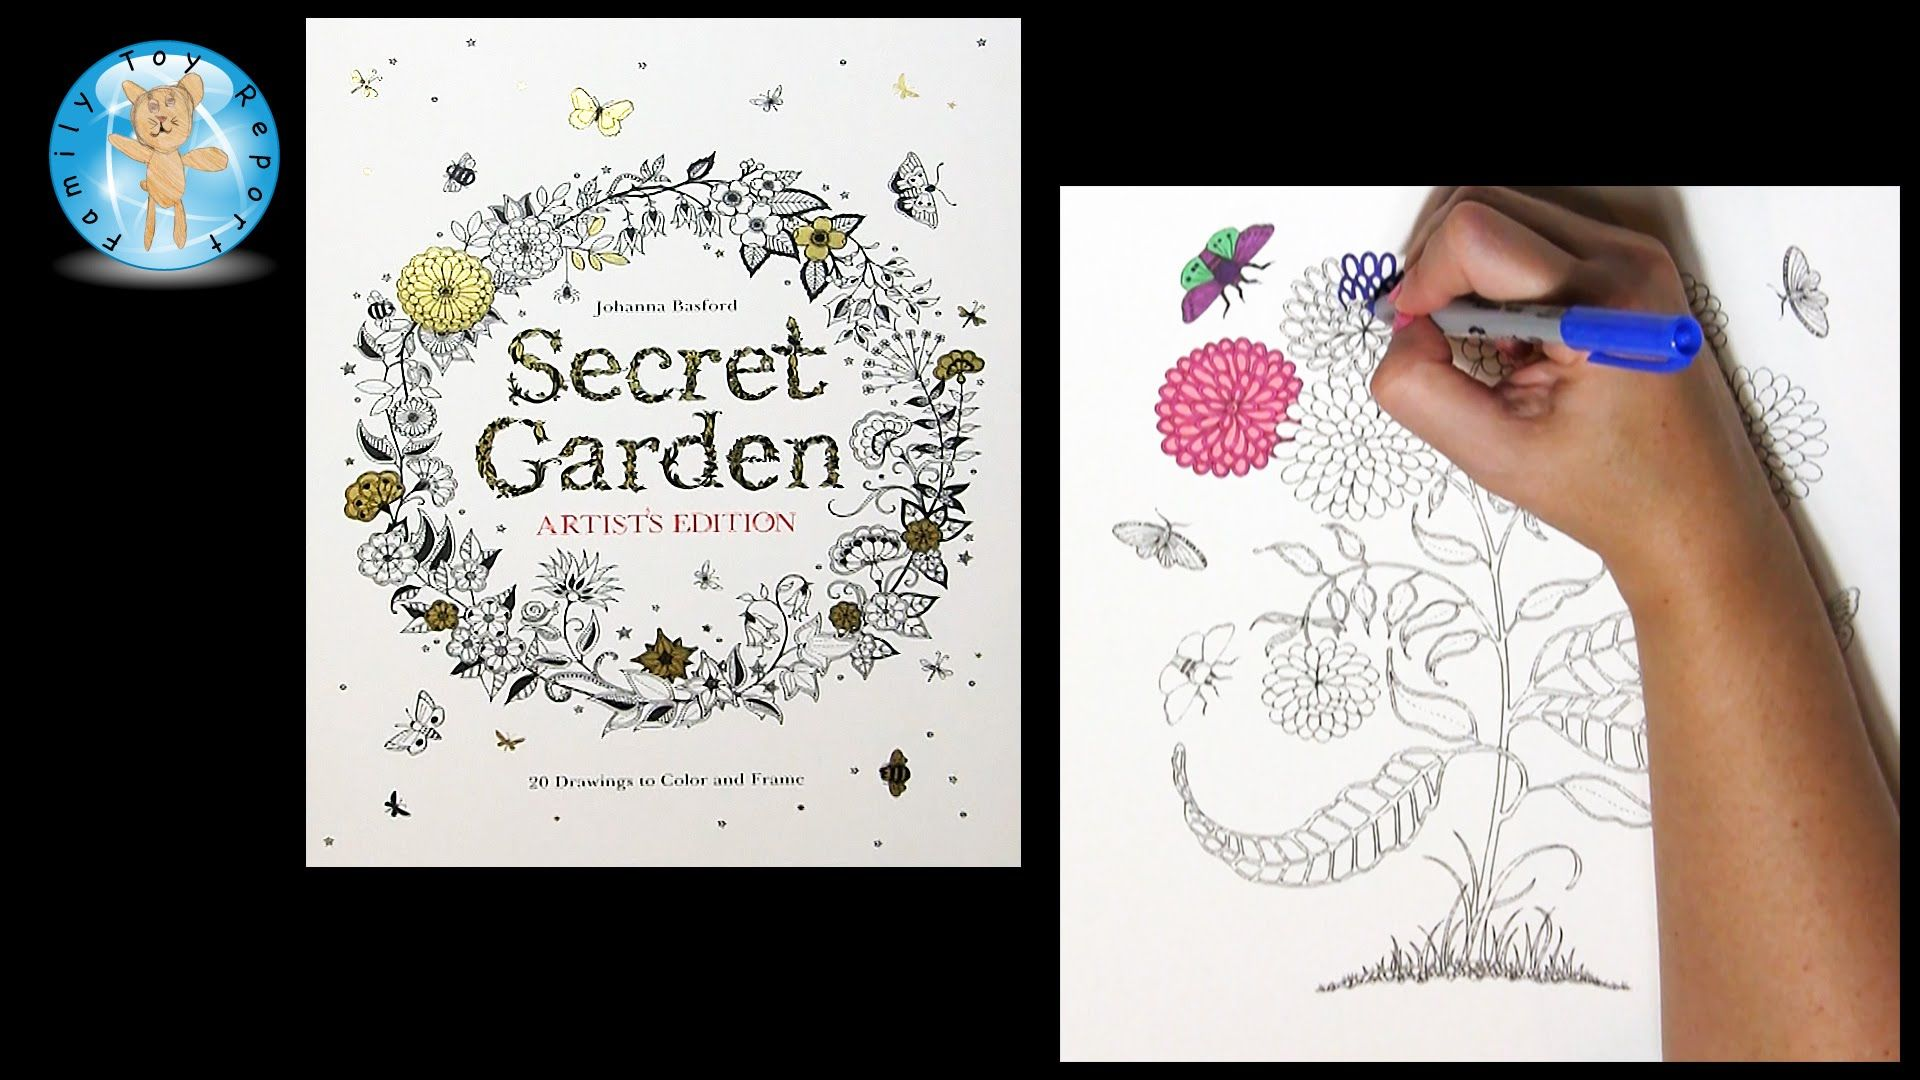 Secret Garden Artists Edition By Johanna Basford Adult Coloring Book